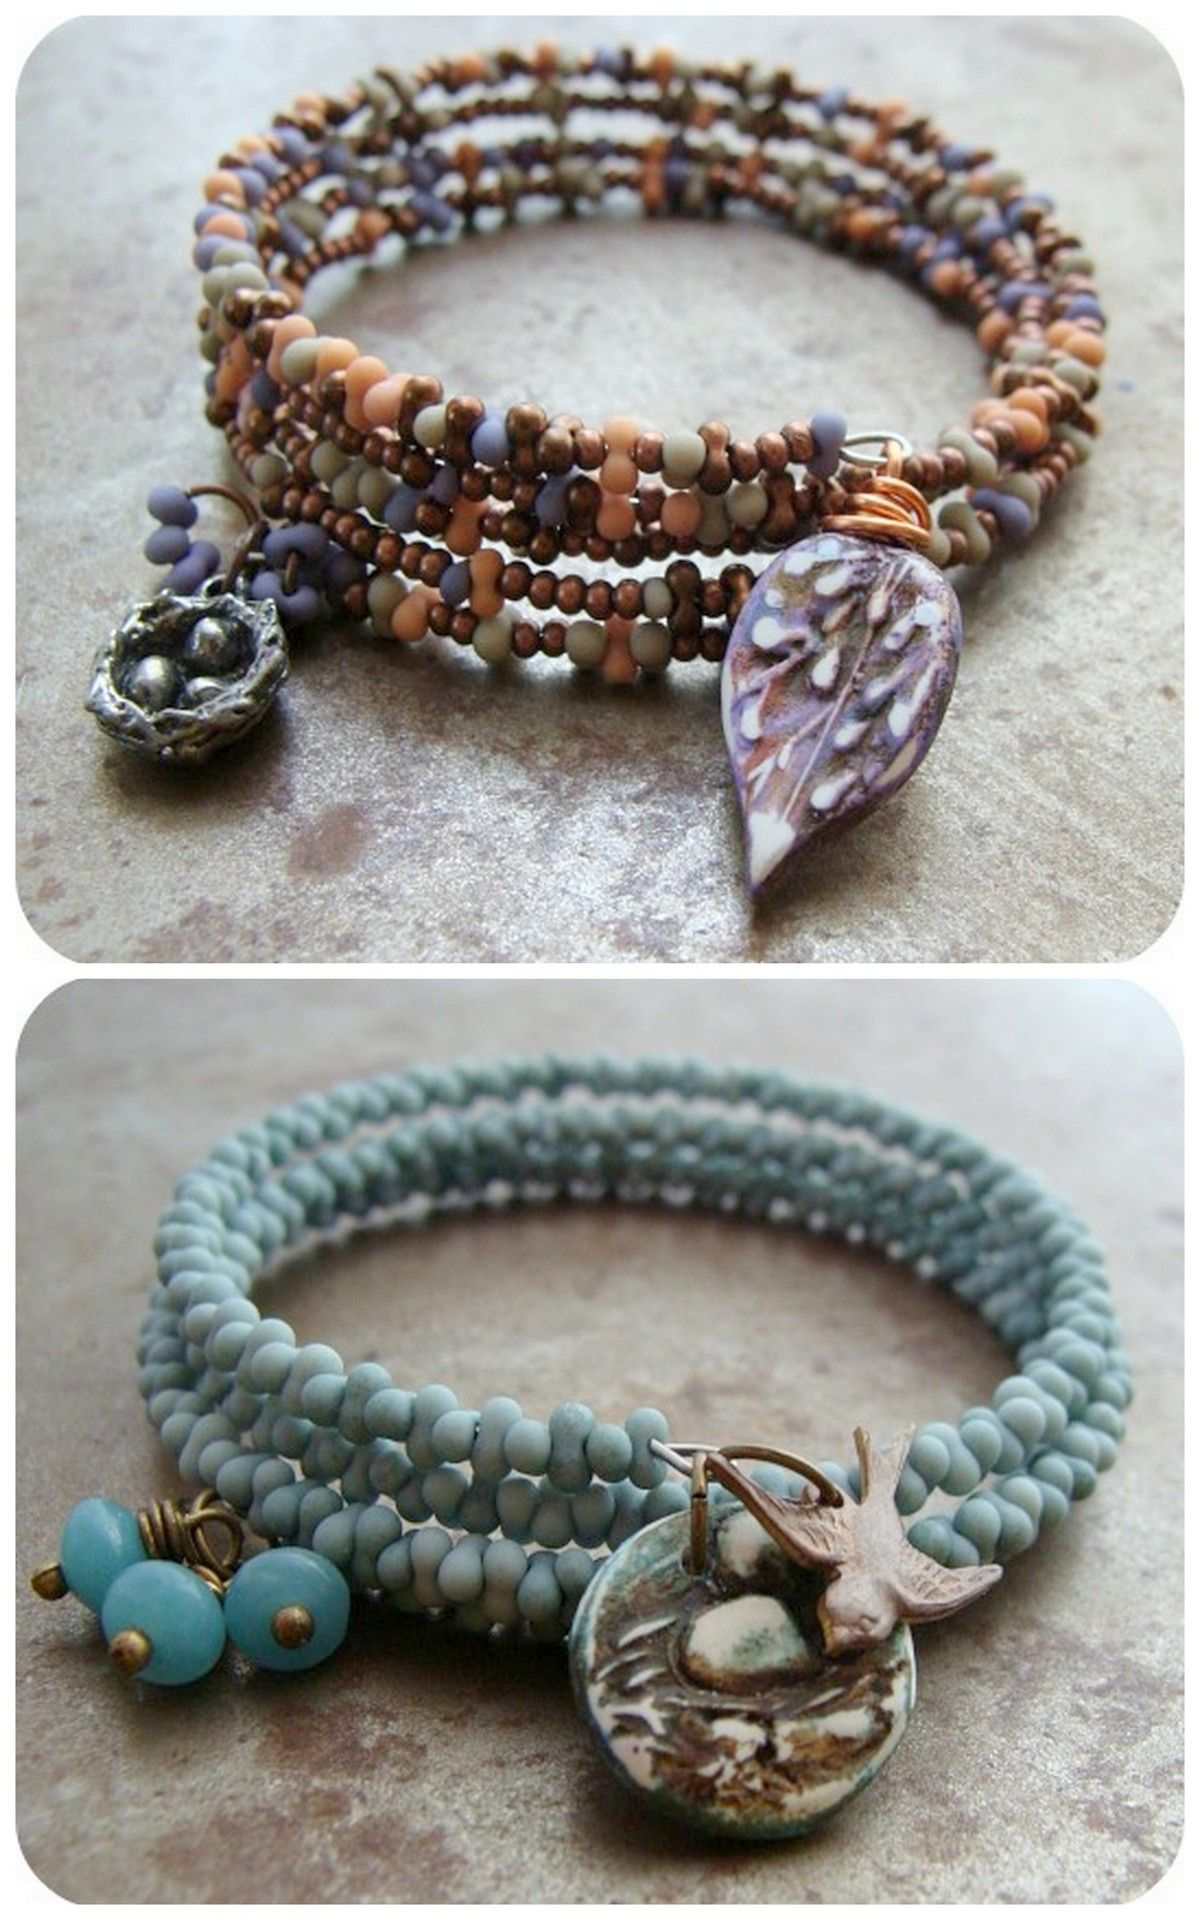 Diy easy memory wire and charms bracelet tutorial from art bead